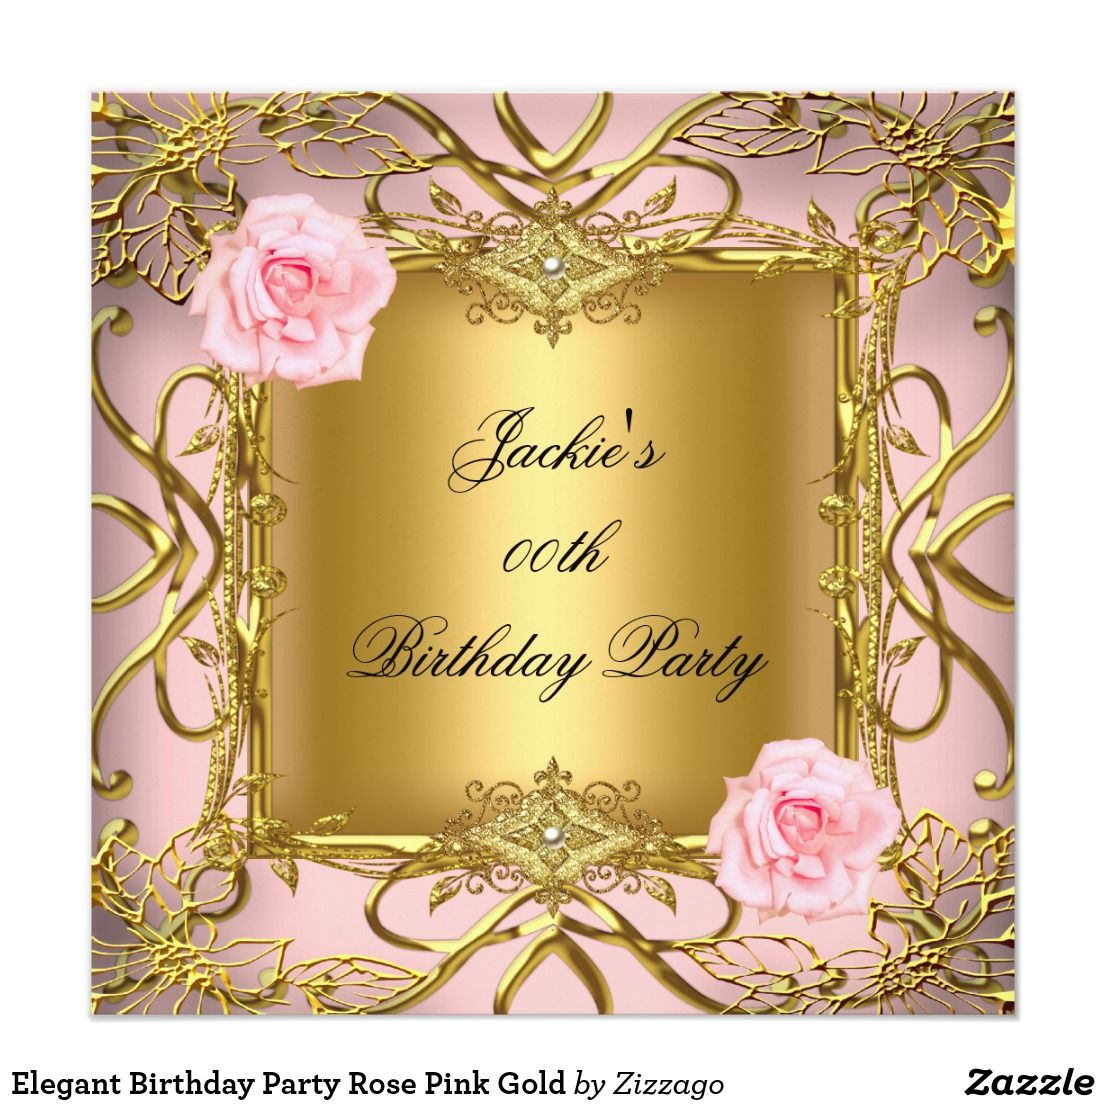 Elegant Birthday Party Rose Pink Gold Invitation Zazzle Com